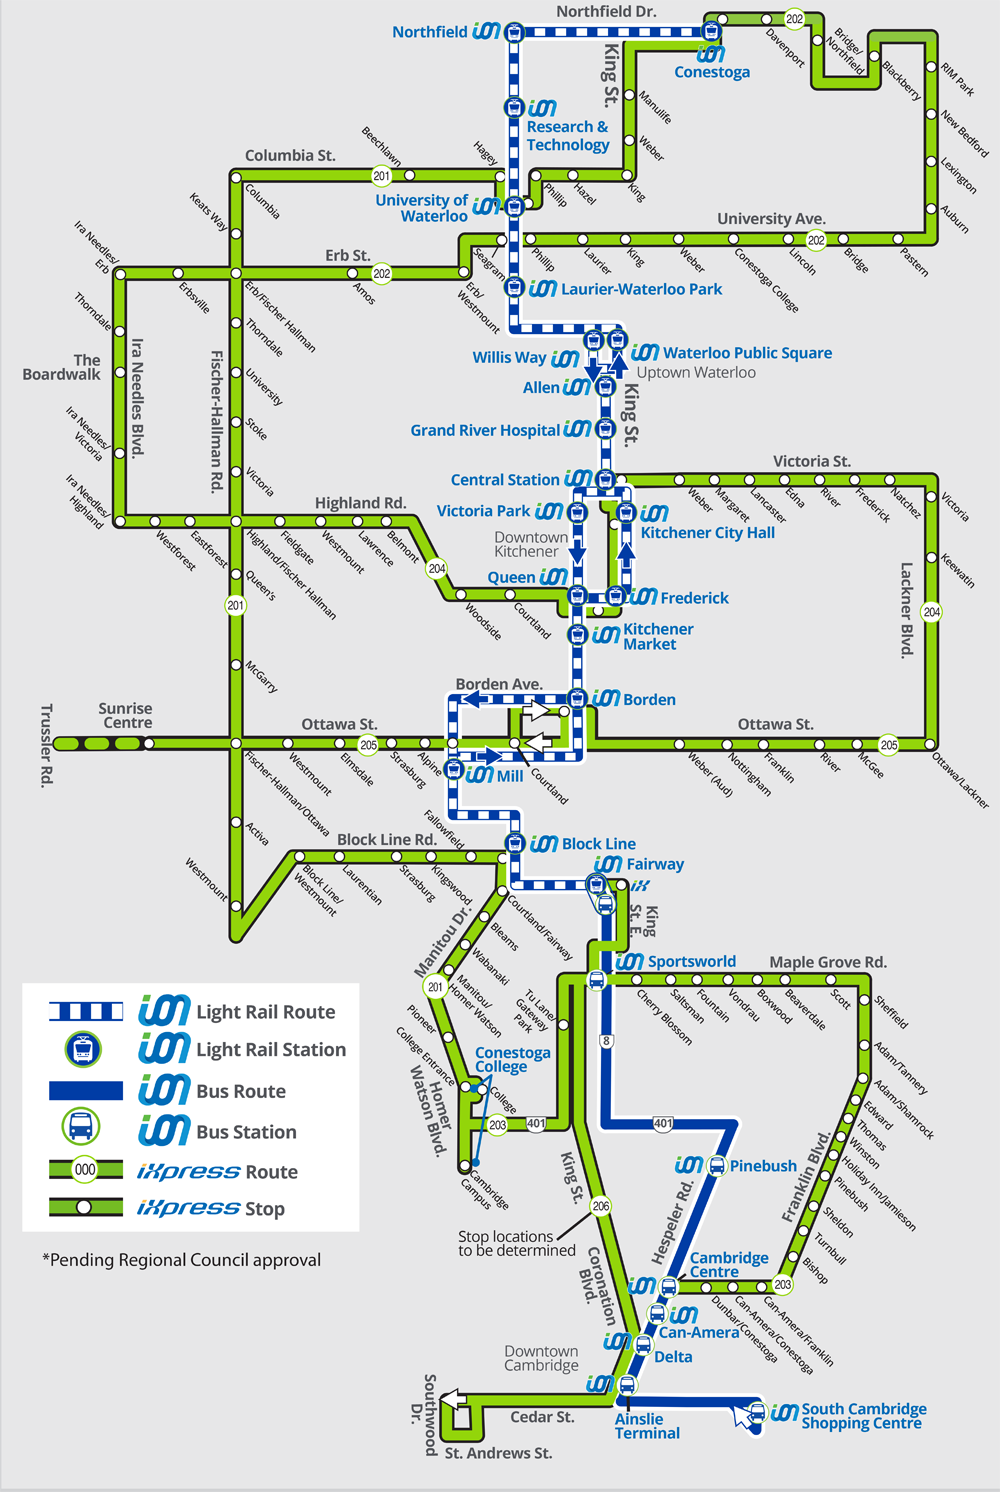 Map showing how iXpress routes will integrate with ION light rail by 2021